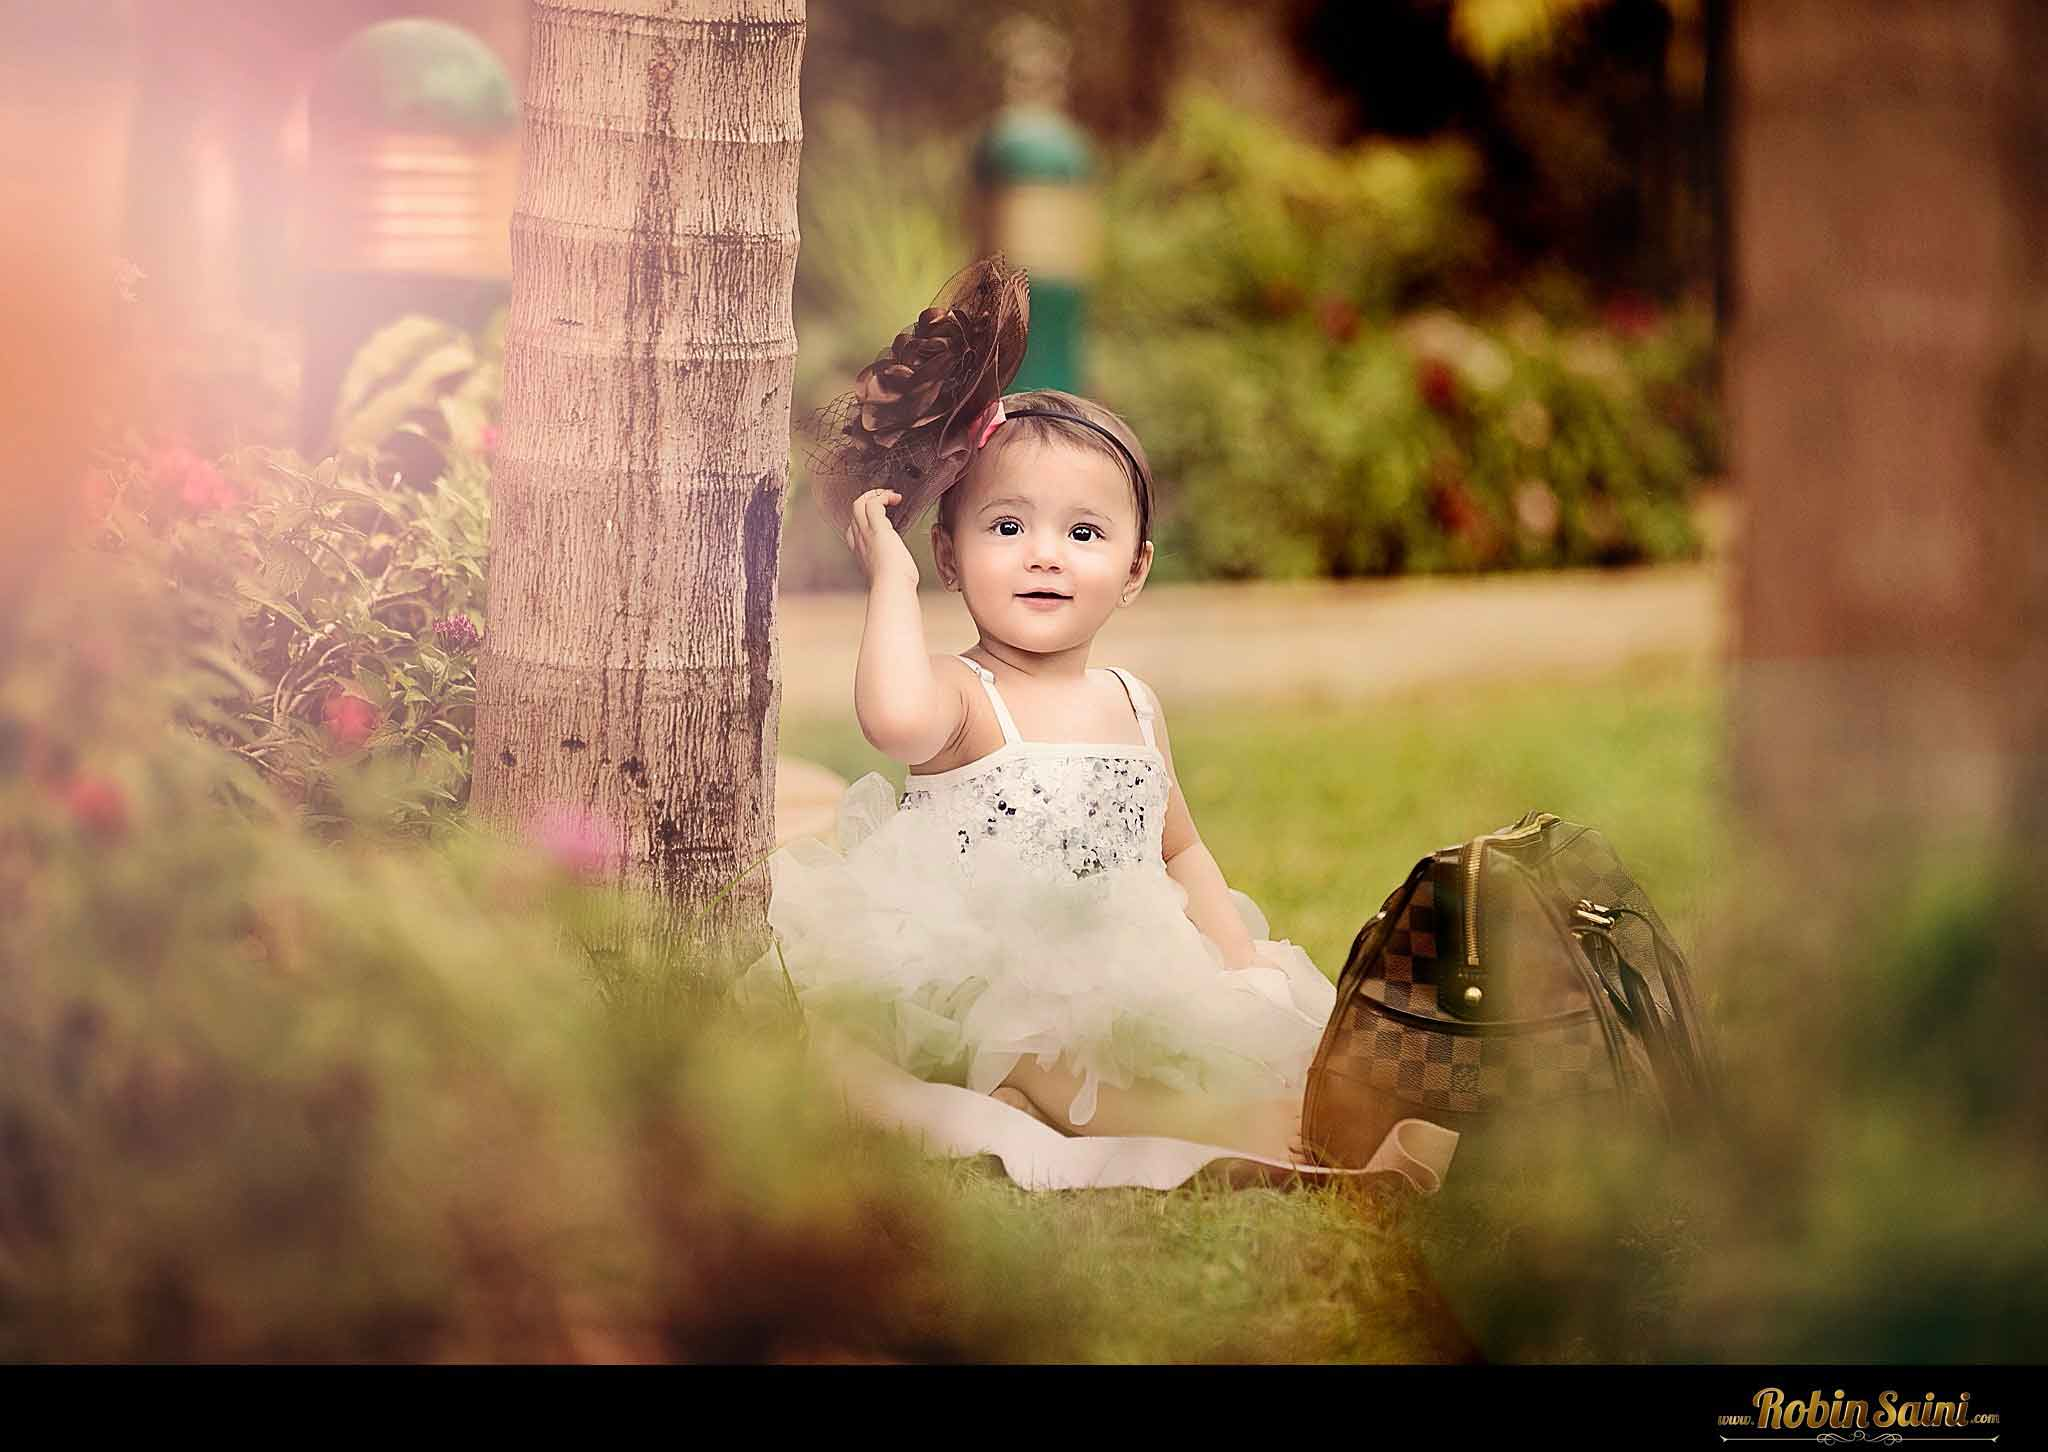 super cute baby girl photoshoot pics.